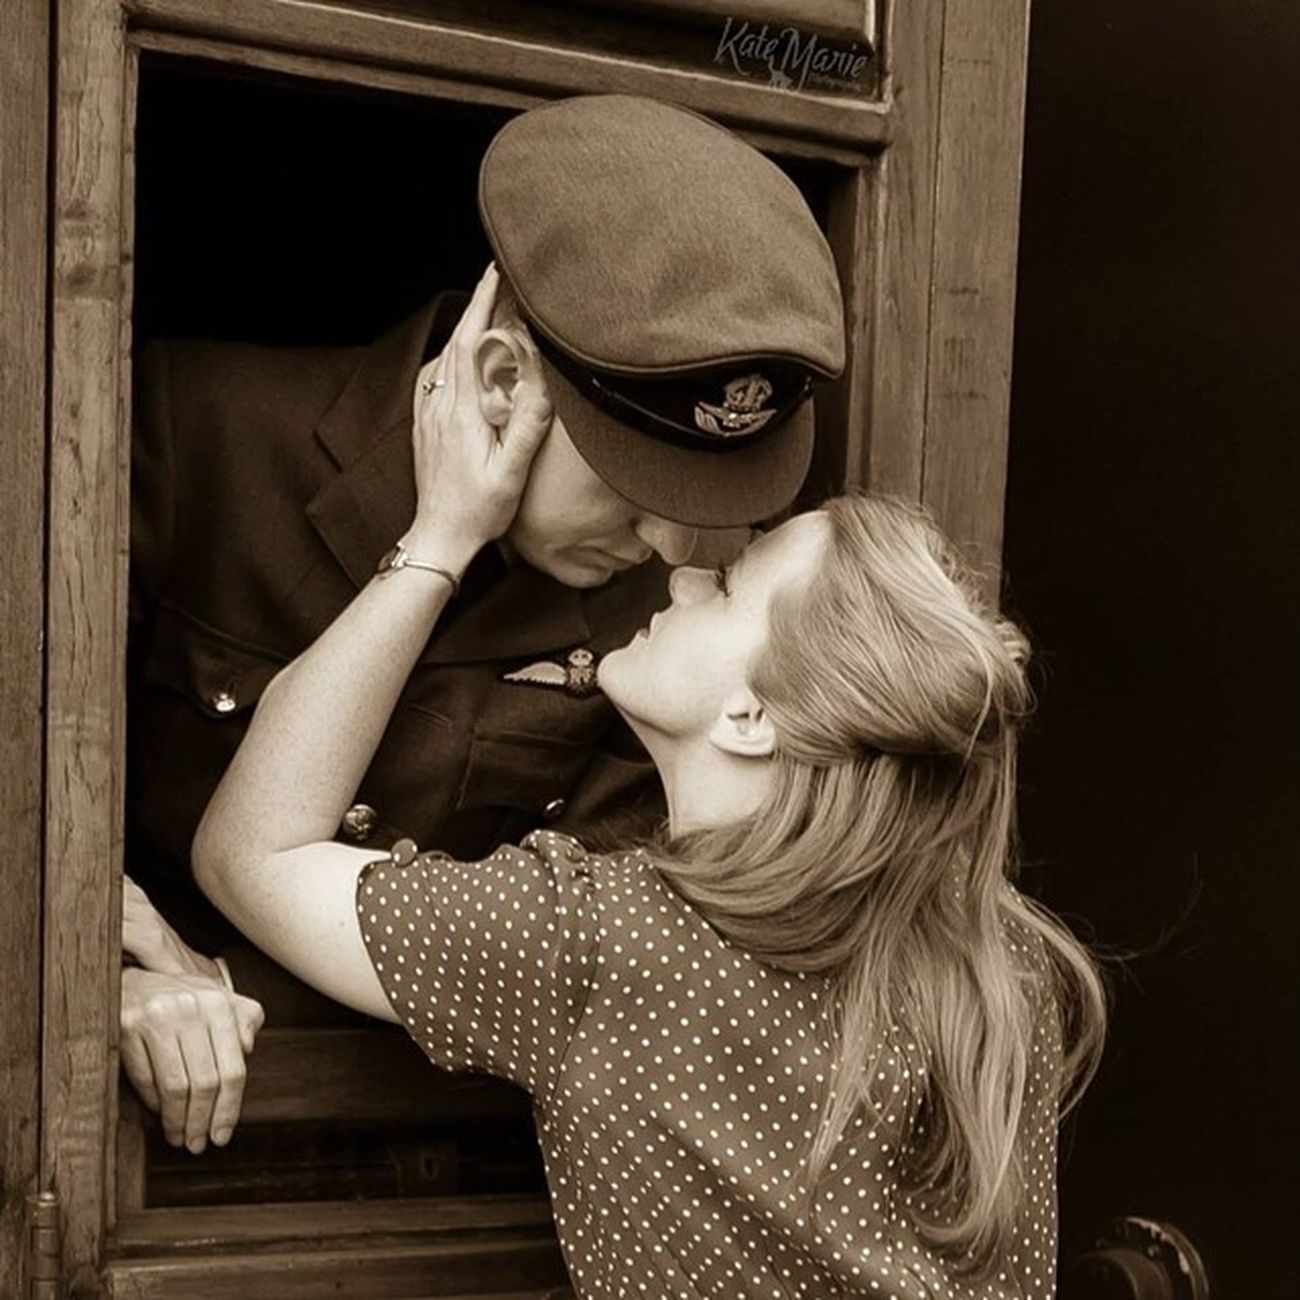 GCR Gcr1940 Army War American Military History 1940 Ww1 Ww2 K8marieuk Katemariephotographyuk Canon Canoneos700d Couple Kiss Lovers Goodbye Sweetheart Sepia Embrace Photo365 Photooftheday Photogeeks